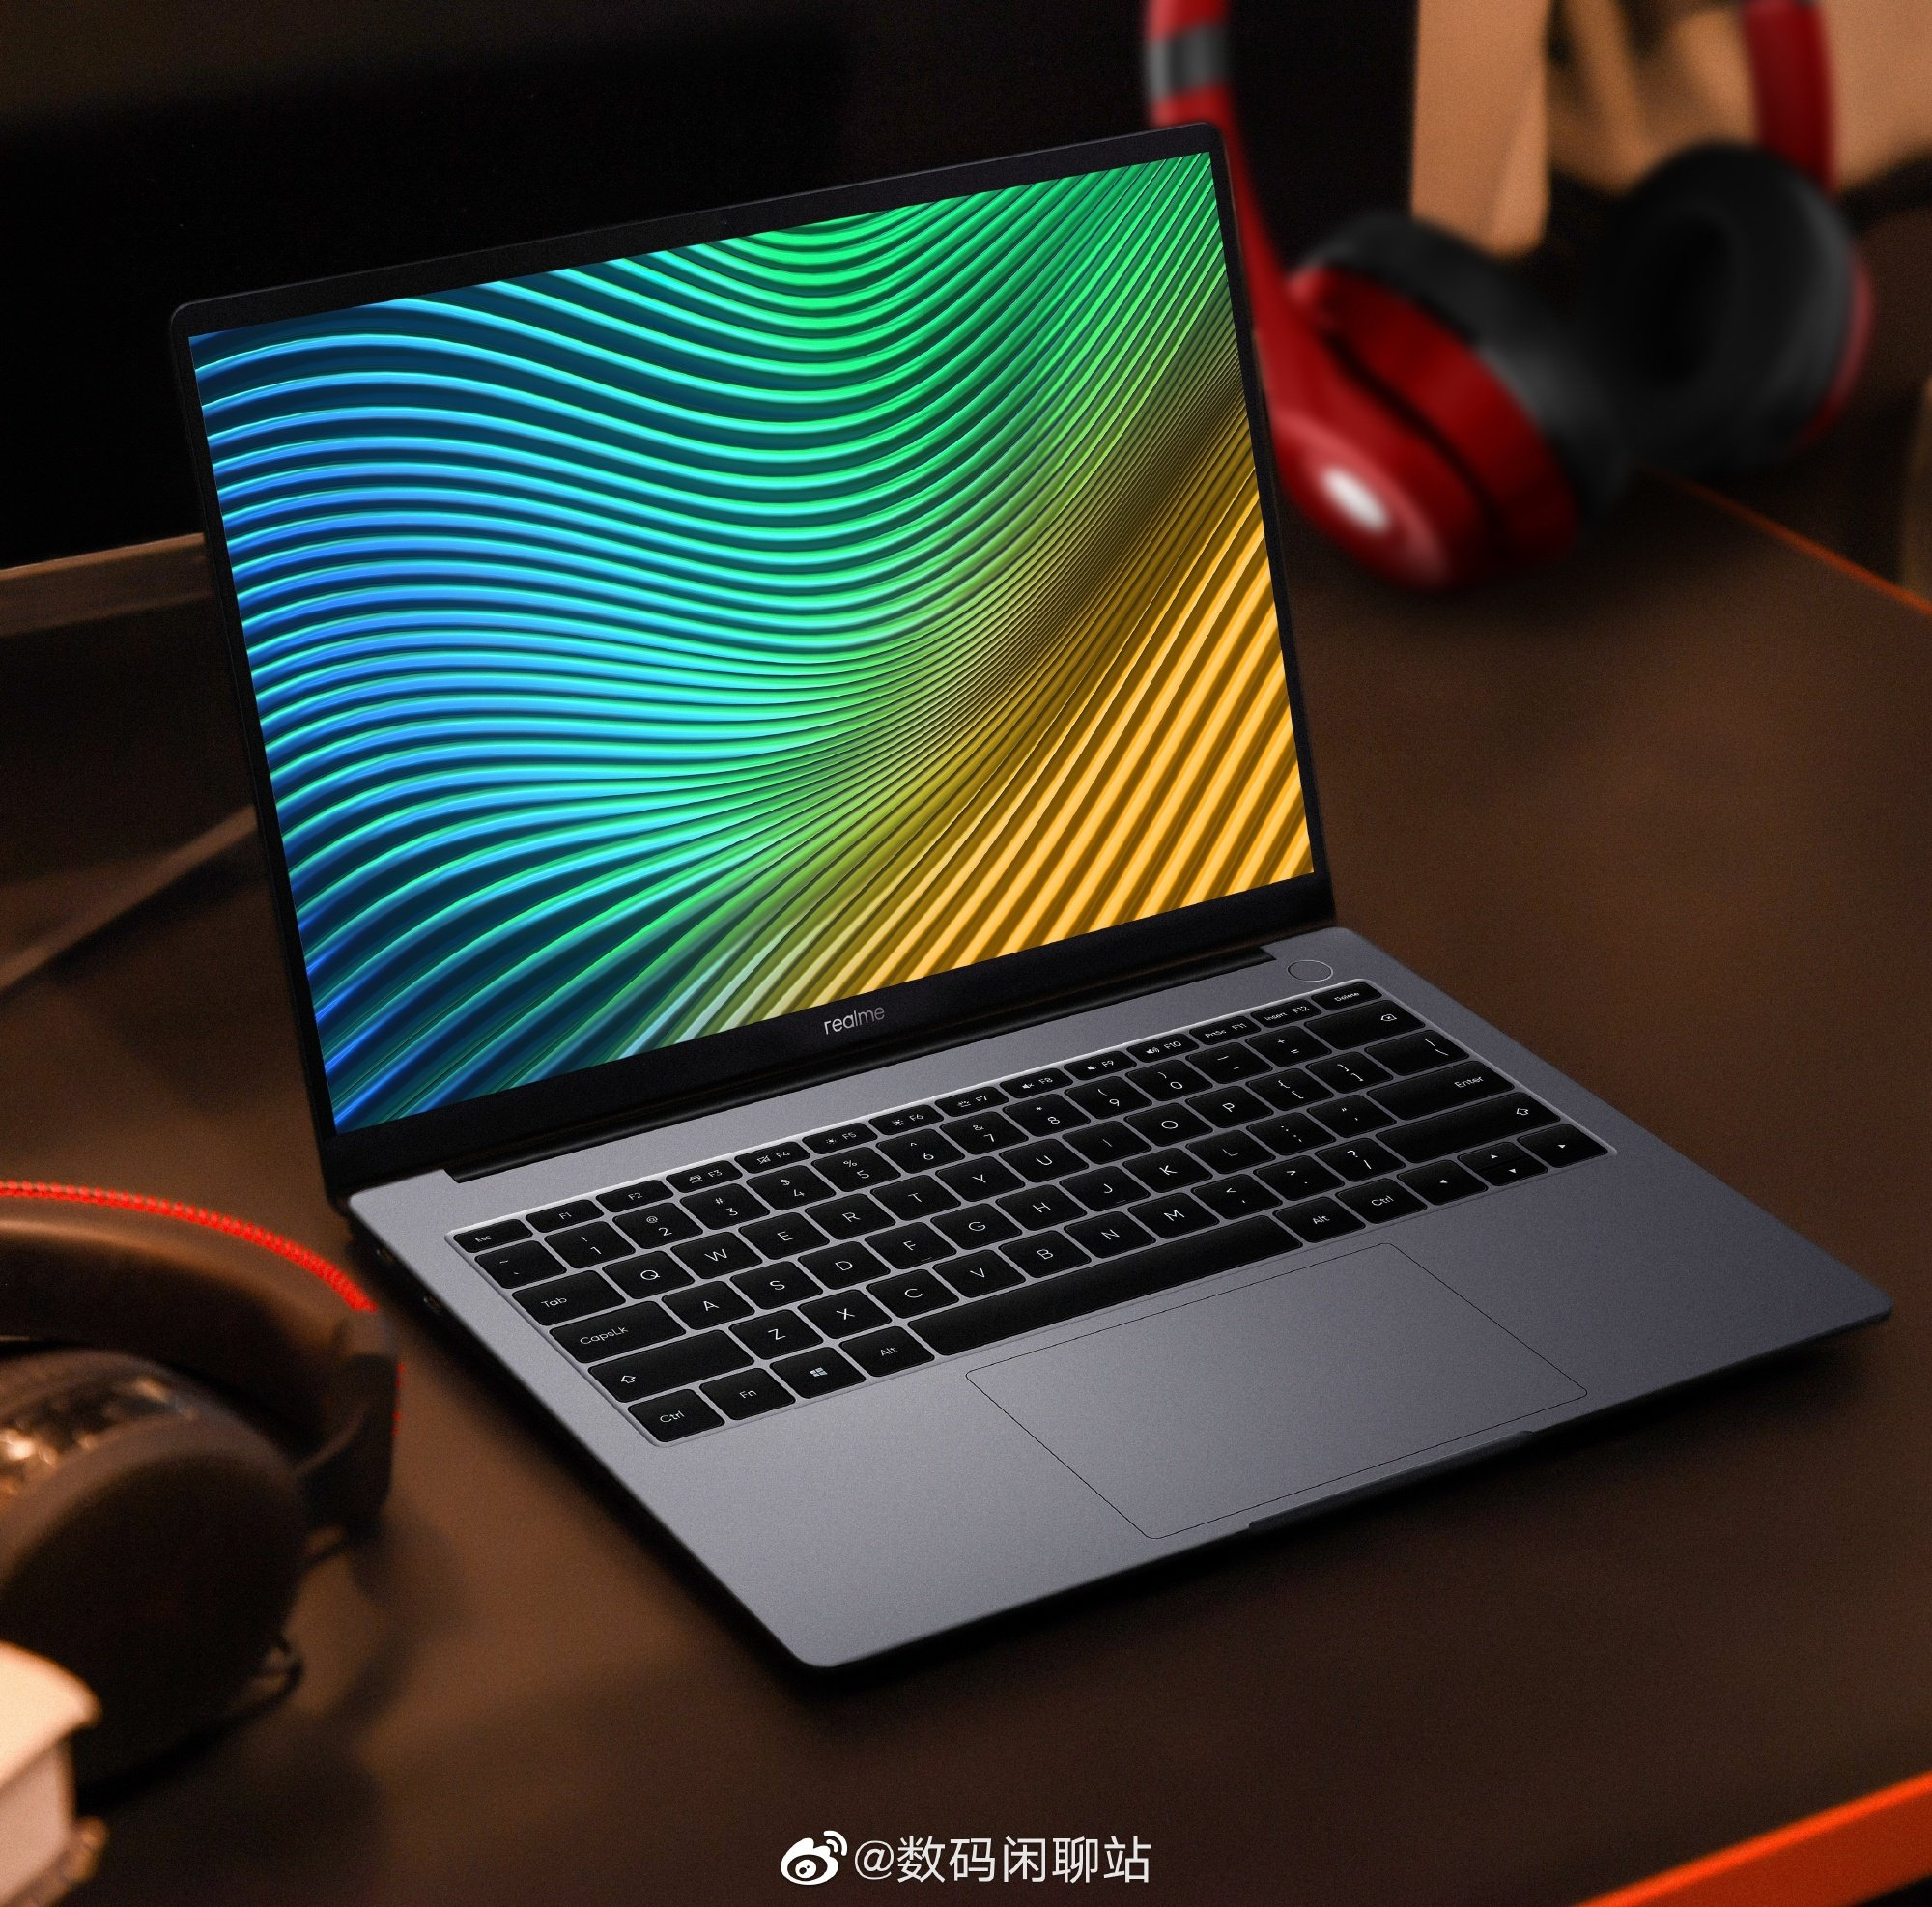 Realme Announces its First Ever Laptop With 11th Gen Intel Processors and 11 Hour Battery for $600